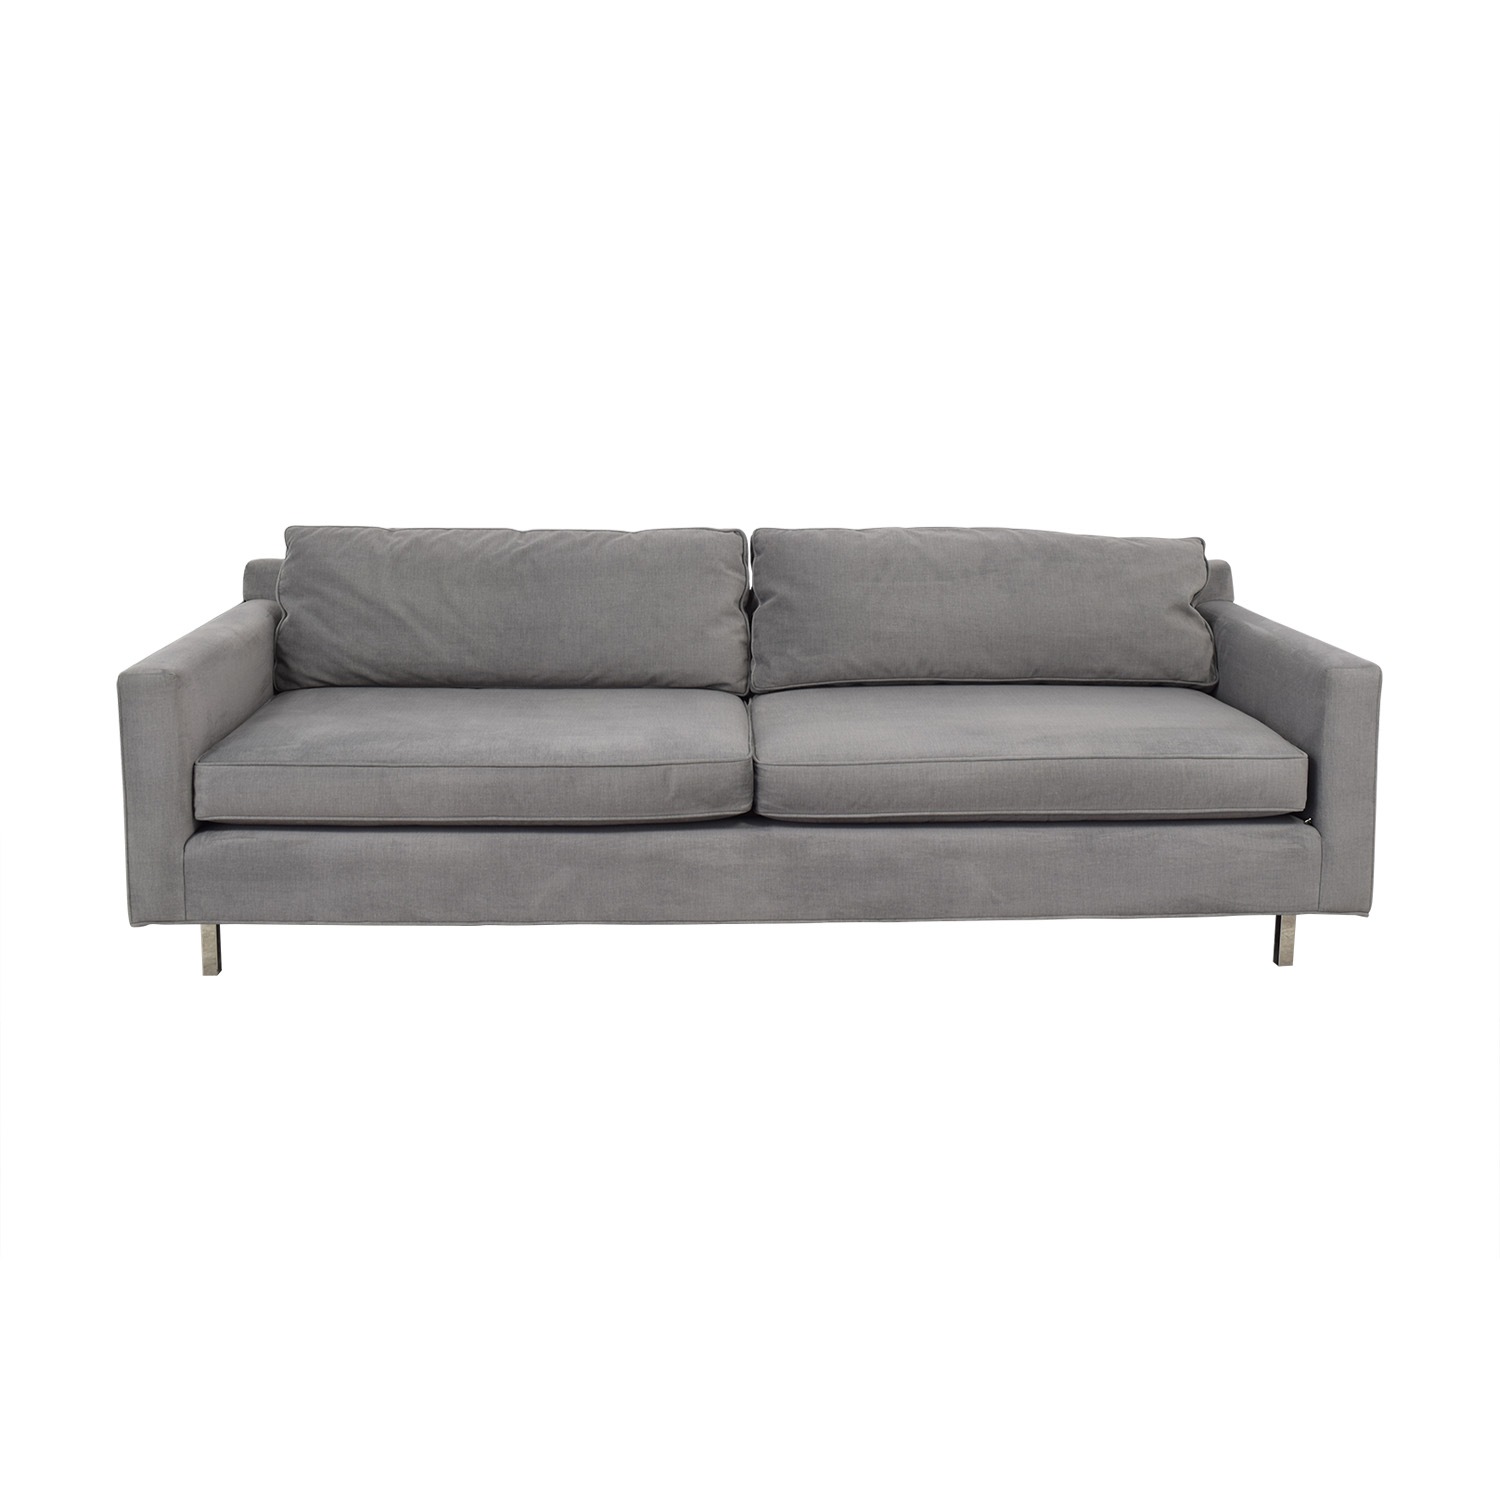 Mitchell Gold + Bob Williams Mitchell Gold + Bob Williams Hunter Grey Two-Cushion Sofa nyc